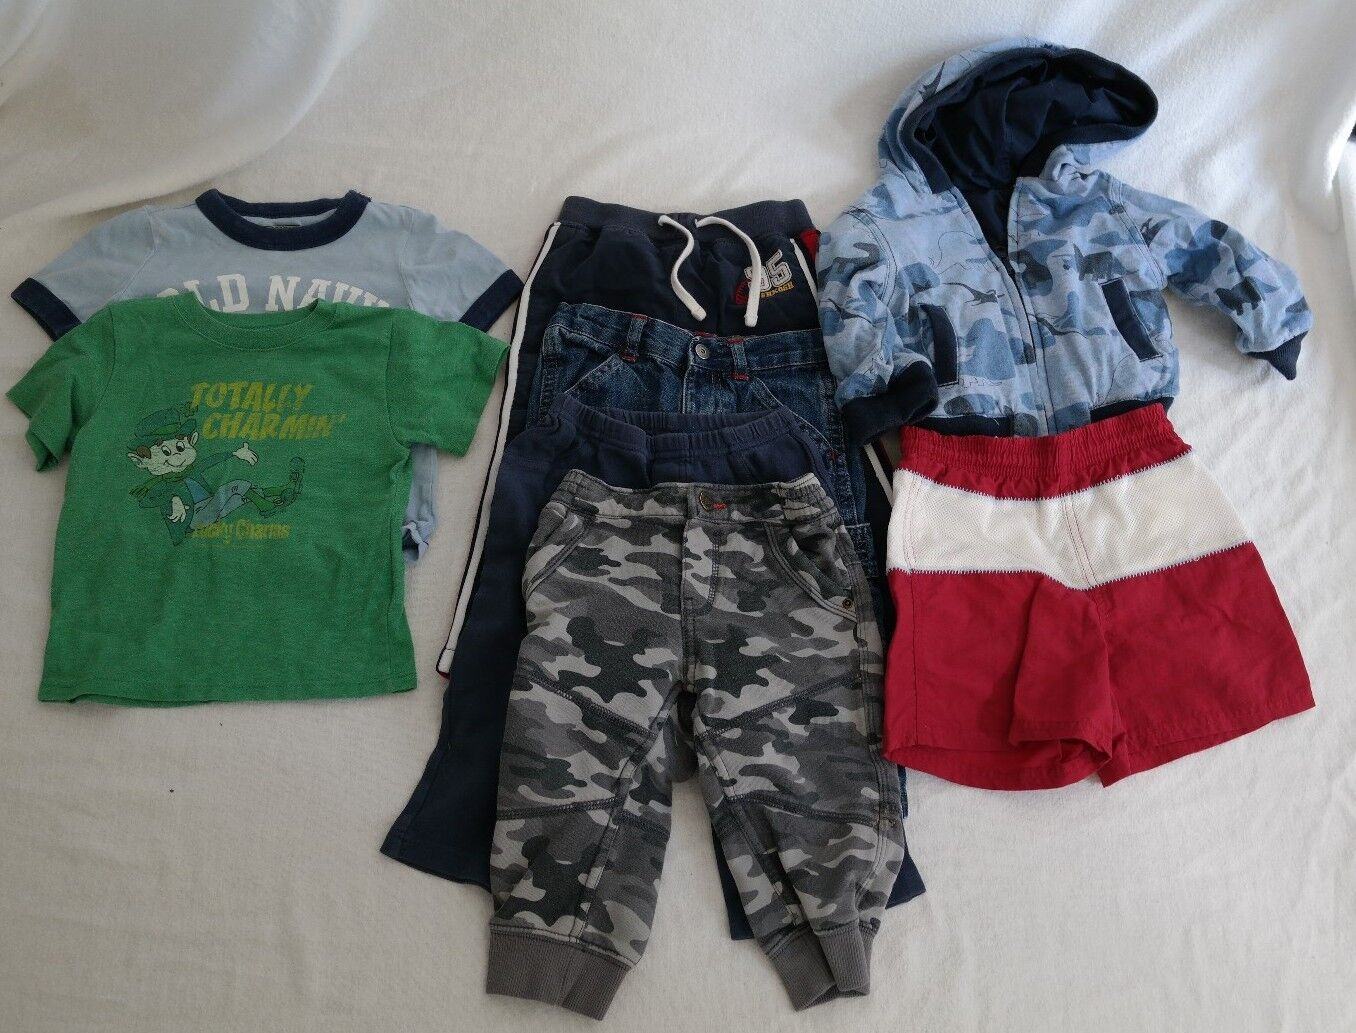 b2c762b6e Boys Baby 18 month clothes lot Toddler Summer Fall Old Navy Circo ...